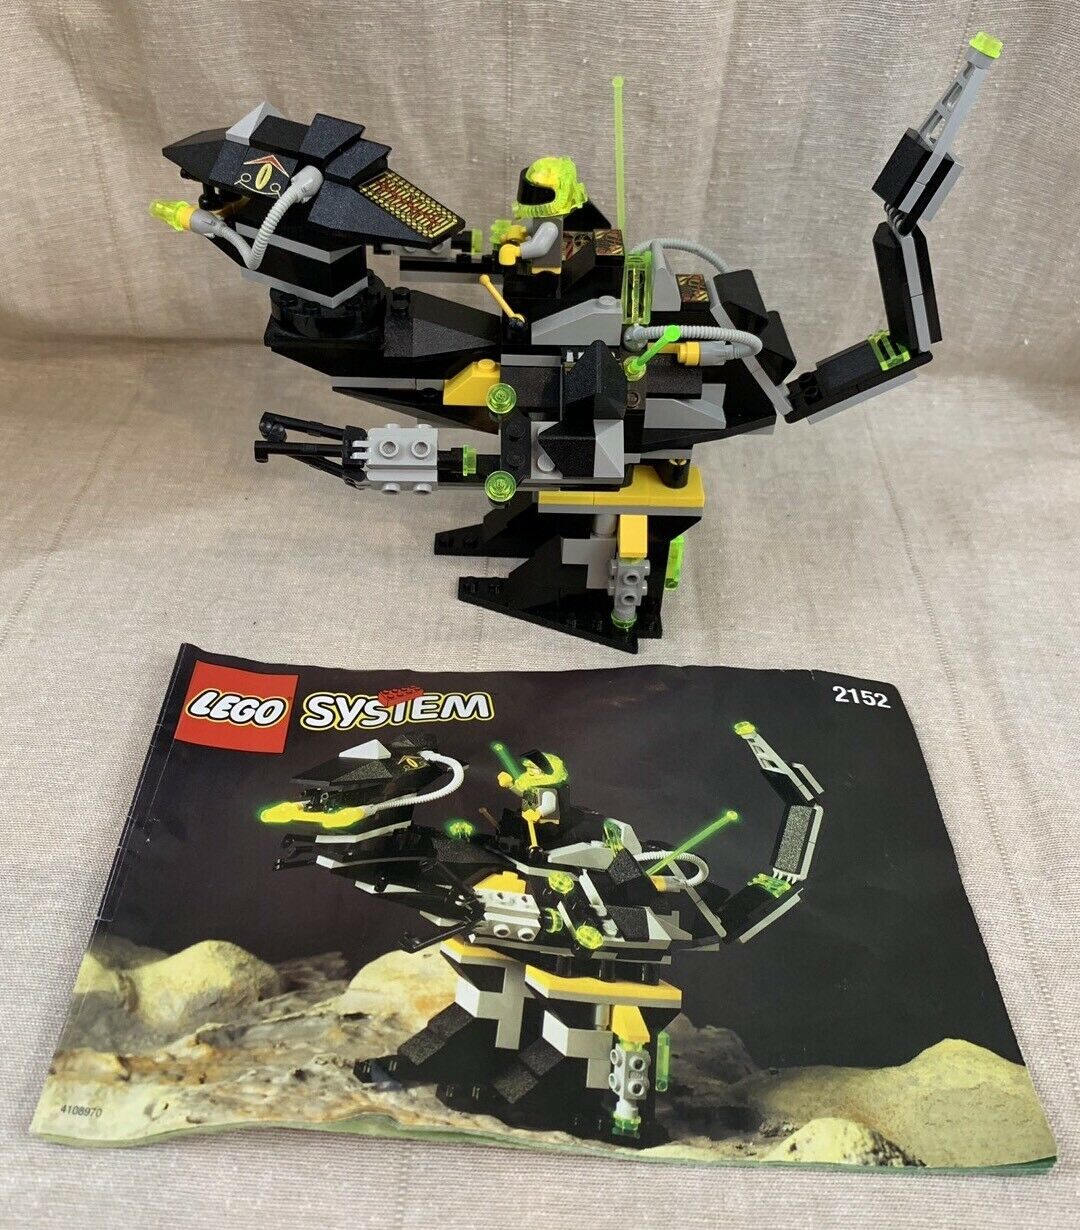 Lego System System System 2152 Classic Space Robo Raptor Master Roboforce Complete - No Box a3b208